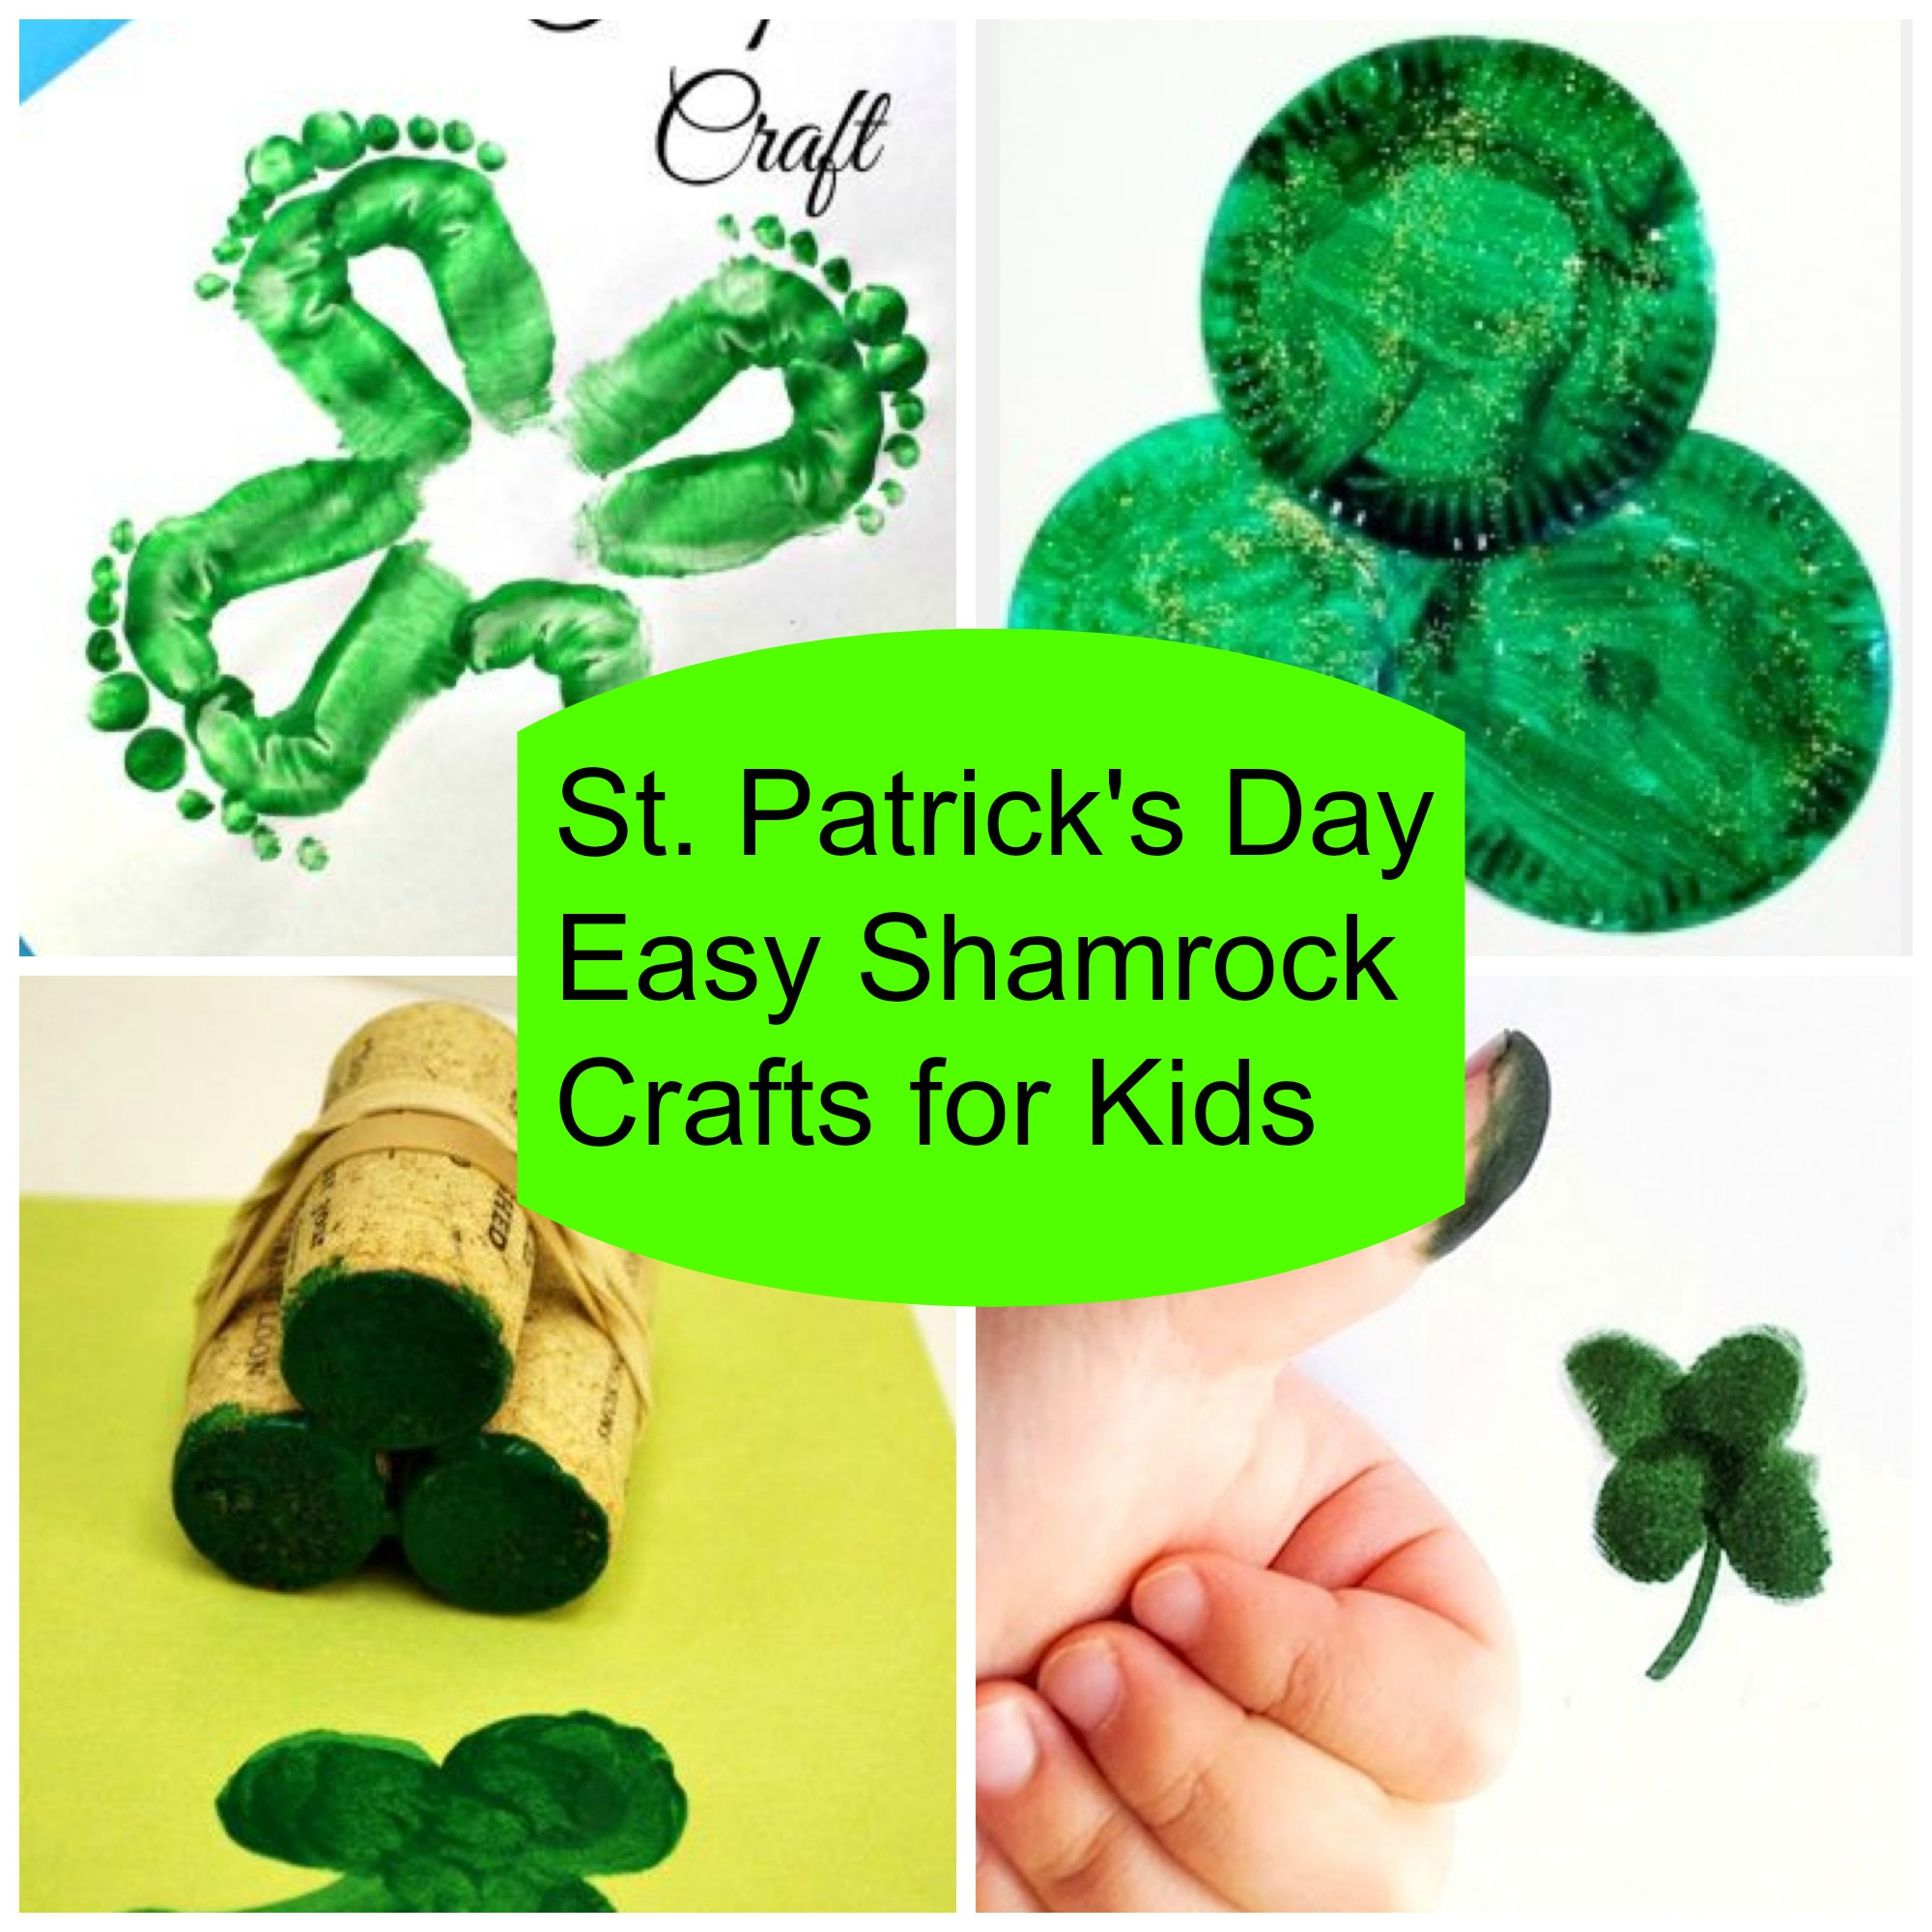 St patricks day crafts for adult apologise, but